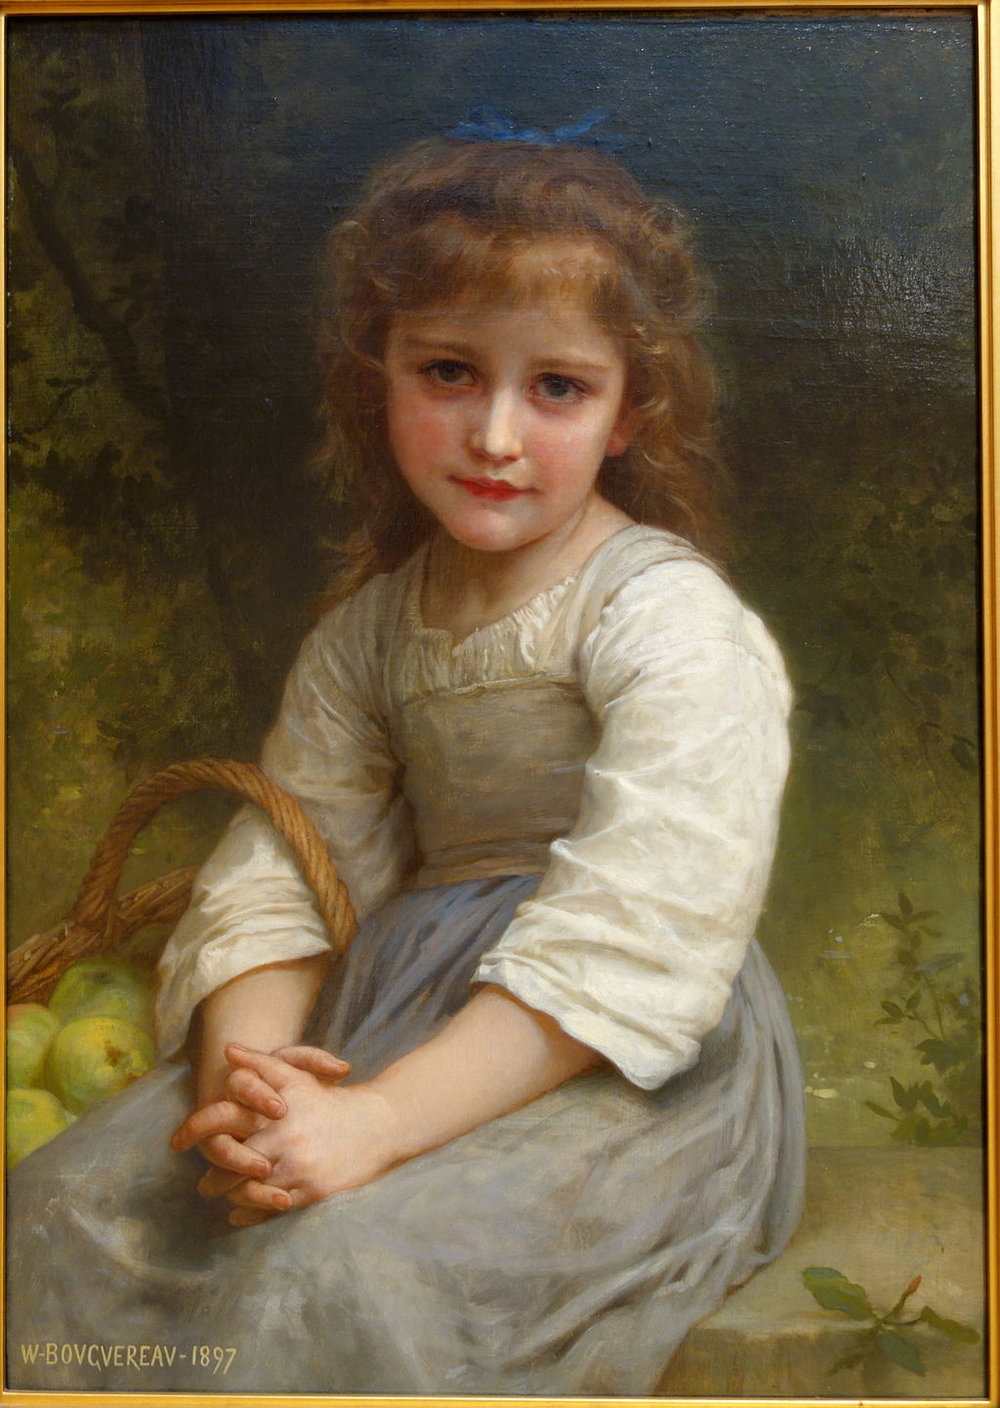 Inspiration // LITTLE GIRL WITH A BASKET OF APPLES // By Daderot // [Public domain or CC0], from Wikimedia Commons